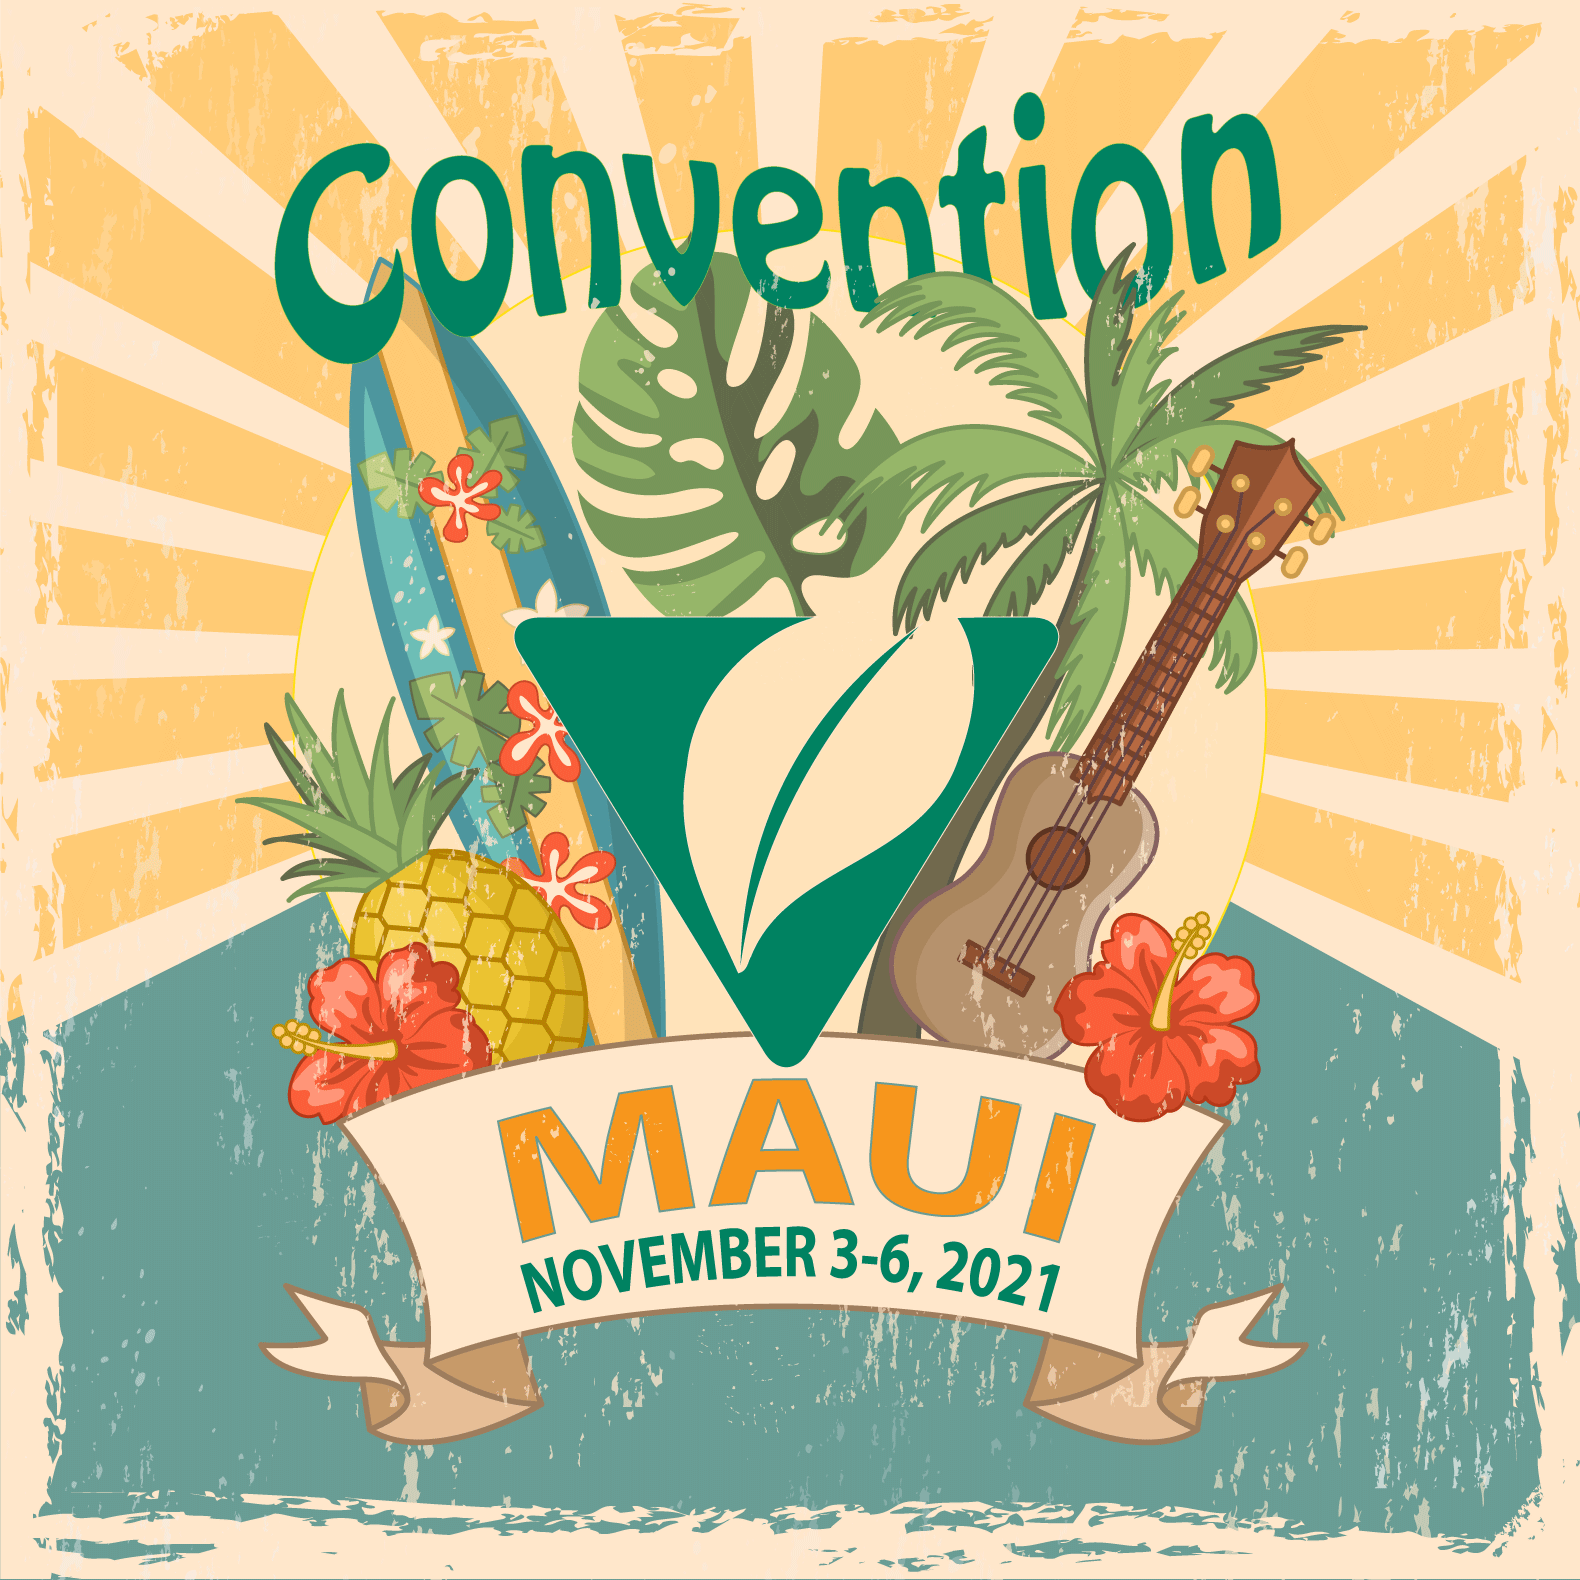 Join CLCA in Hawaii for the 2021 Annual Convention